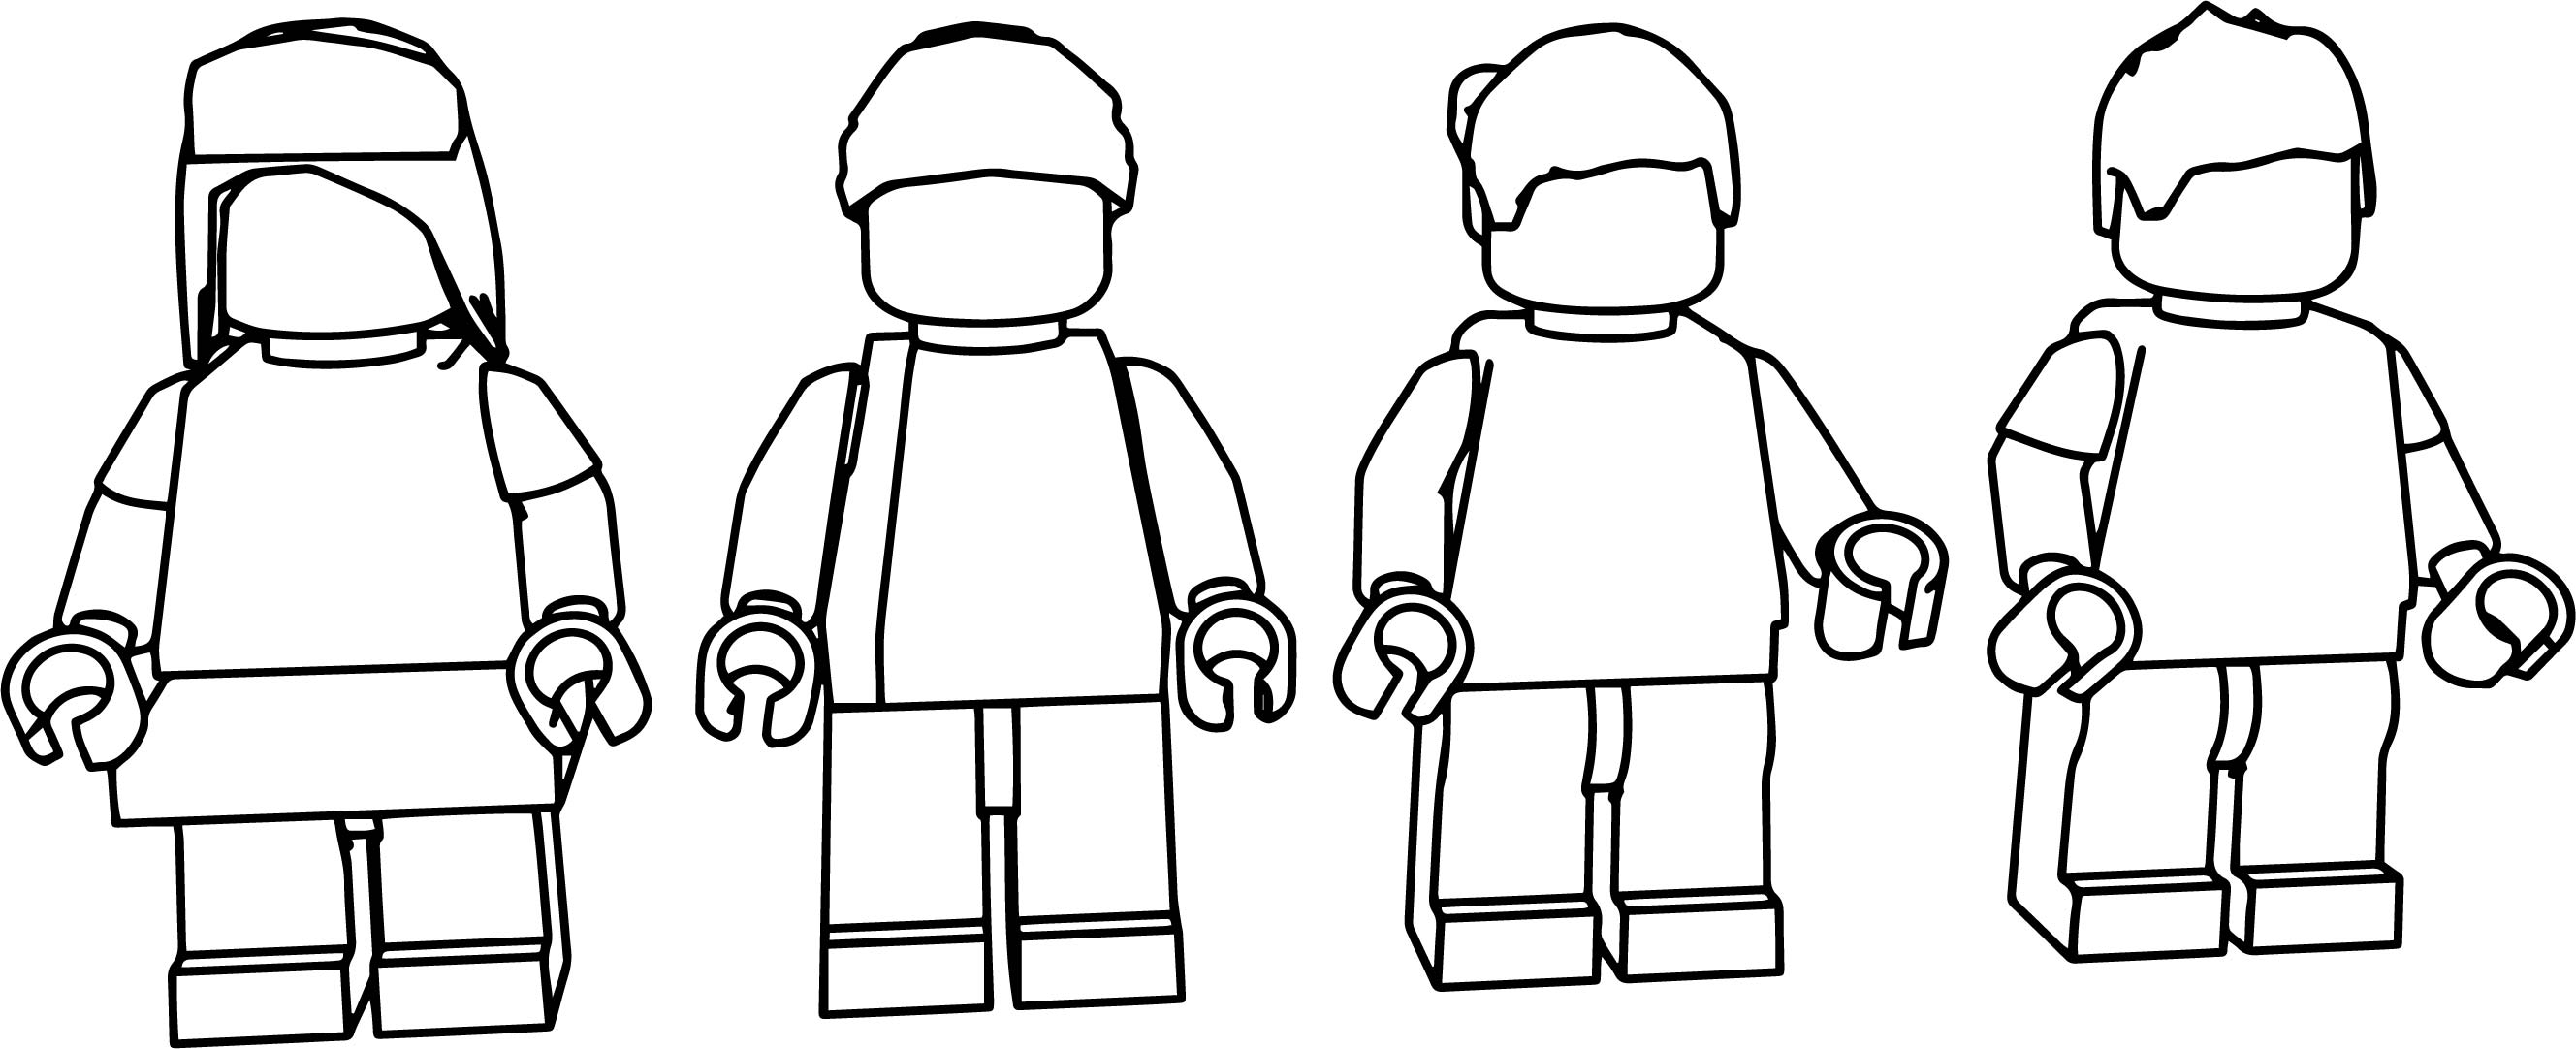 Lego People Coloring Page